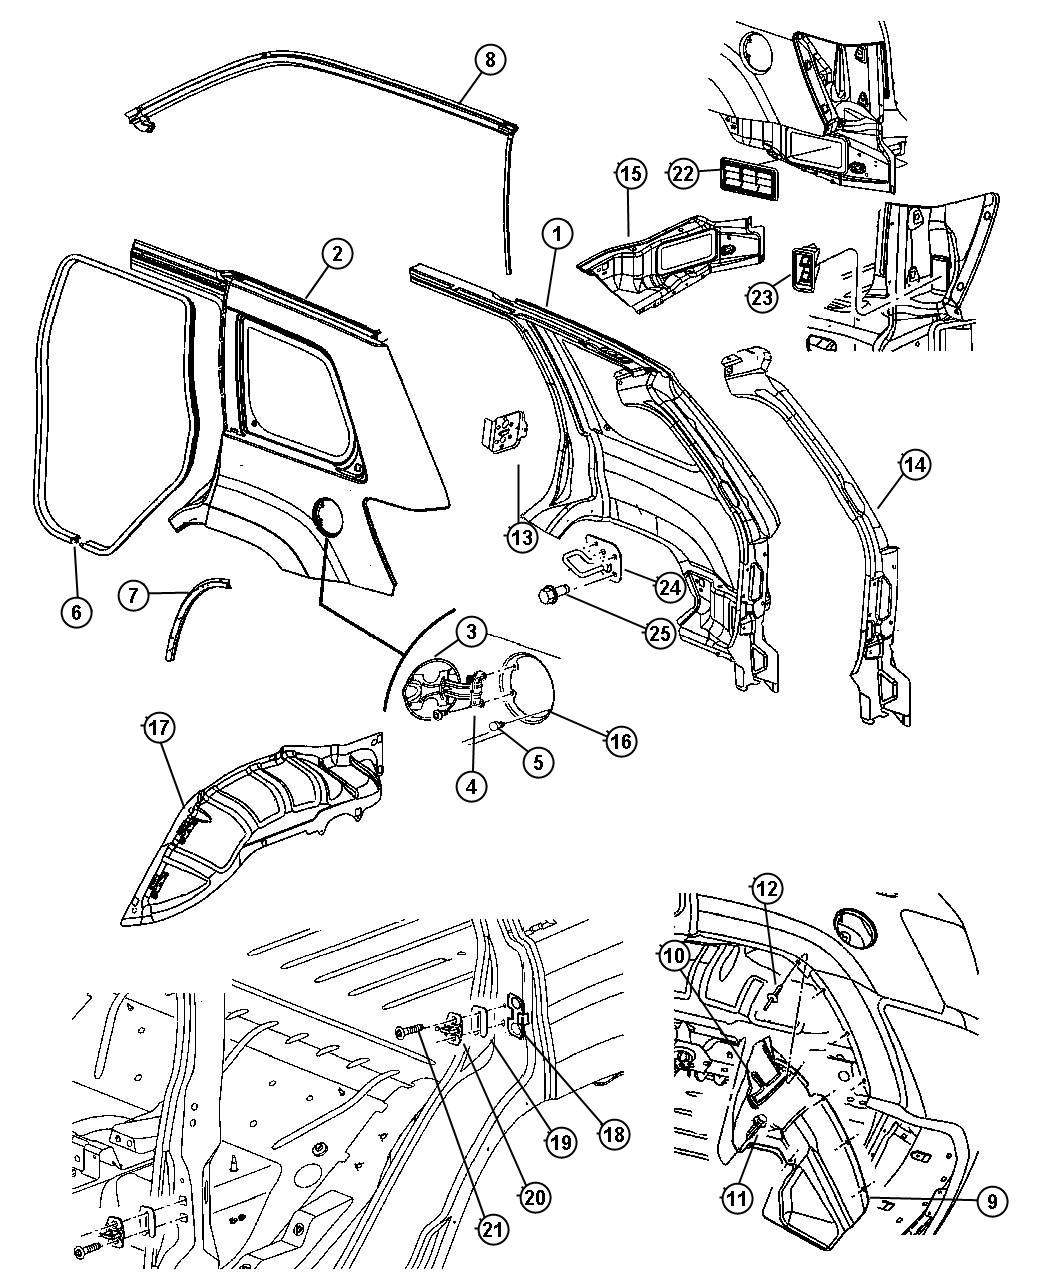 tags: #jeep cj7 brake diagram#jeep cj brake line diagram#jeep cj7 engine  diagram#83 cj7 fuel line diagram#jeep vacuum line diagrams#1972 jeep cj5  fuel